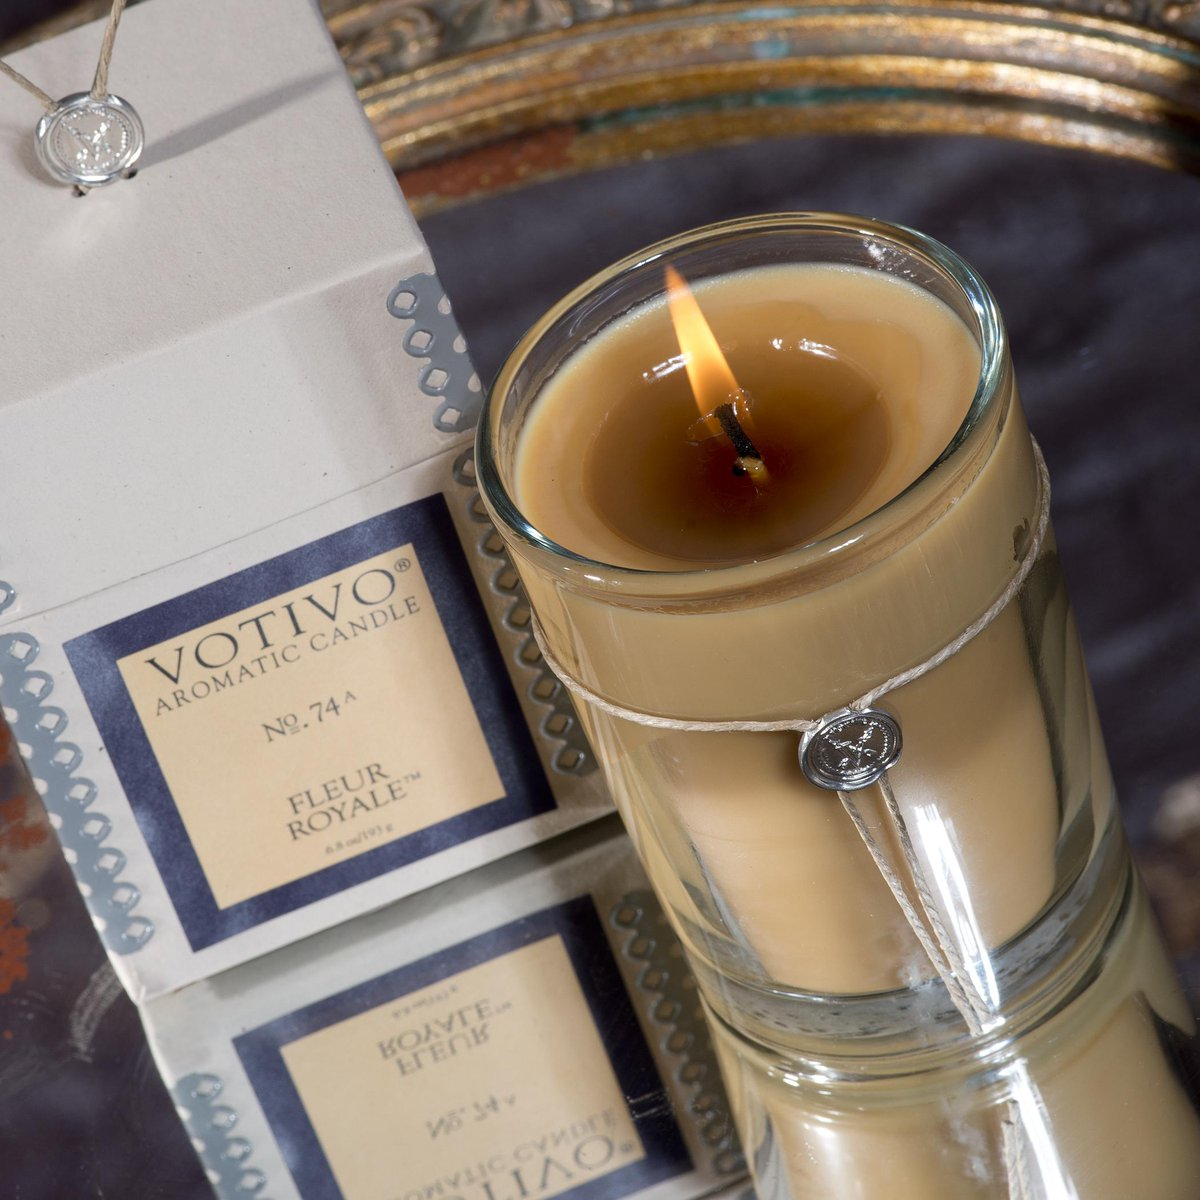 NEW from @VOTIVO! Lovely and enchanting Fleur Royale! shop here: http://t.co/QNTVjGHzVt #newcandle #weekend http://t.co/LBWEd7c7XB